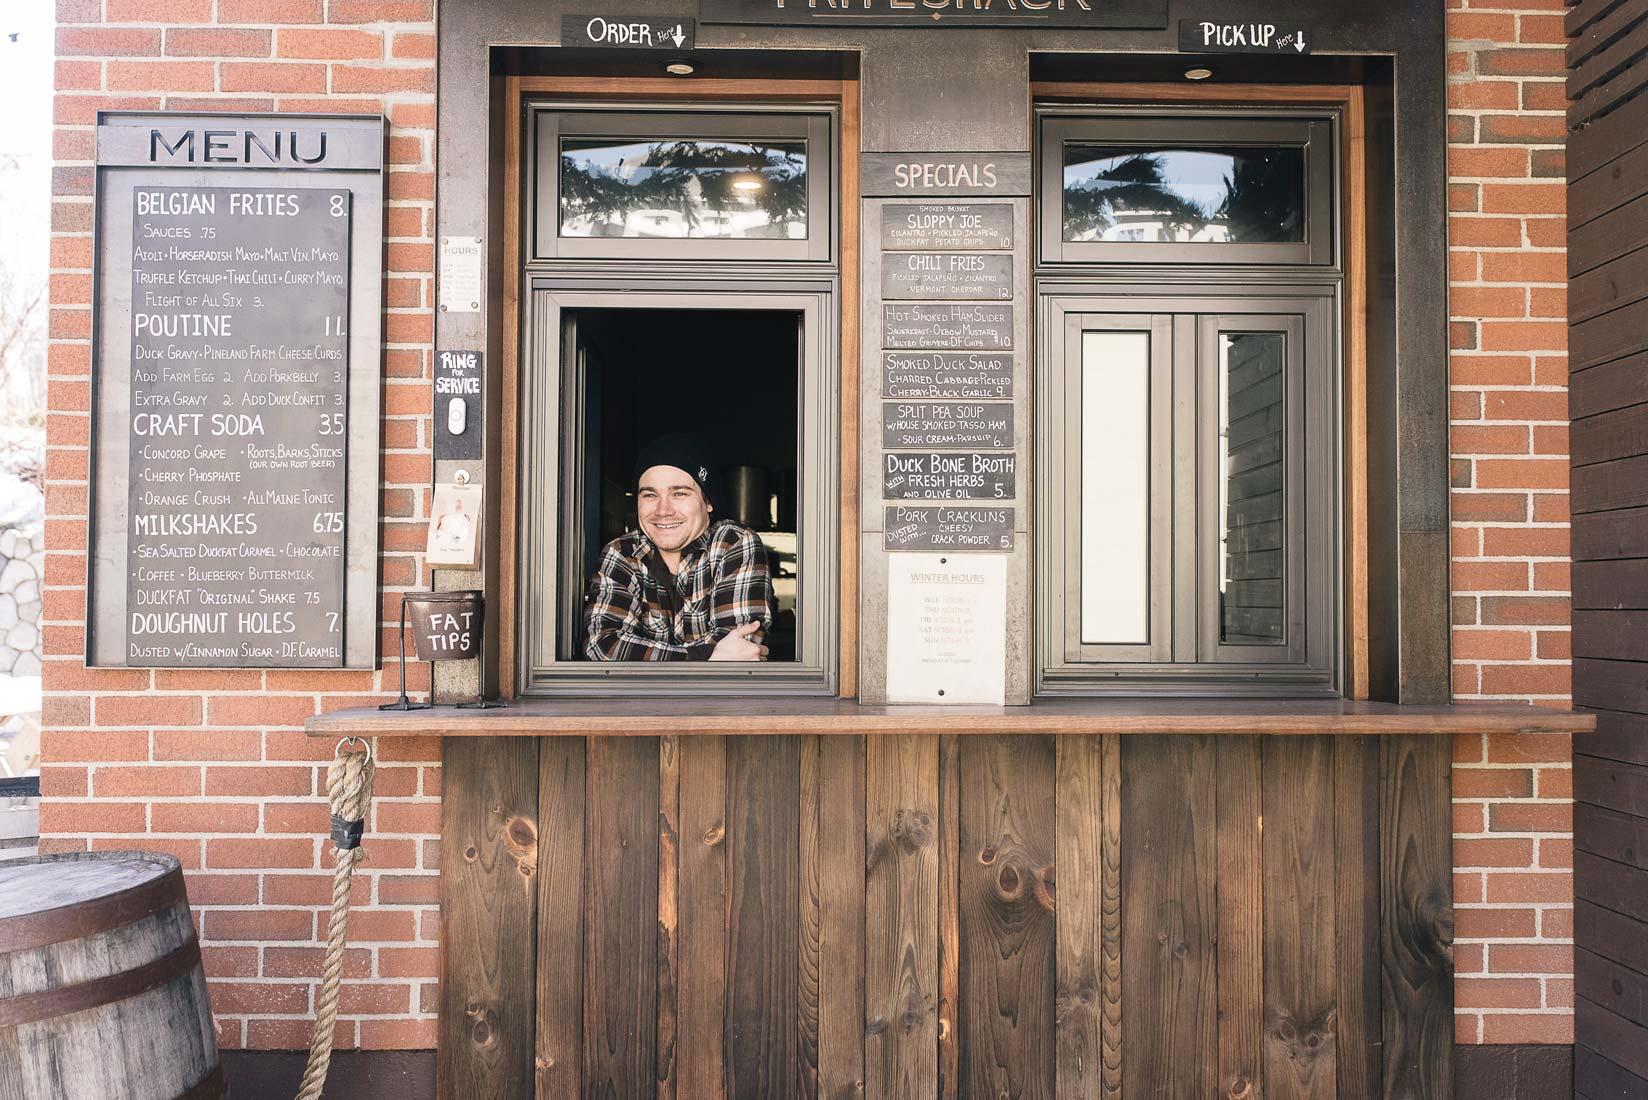 In the beer garden at Oxbow Blending & Bottling, Duckfat Friteshack's walk-up fry window is modeled after similar setups in Belgium and Amsterdam.